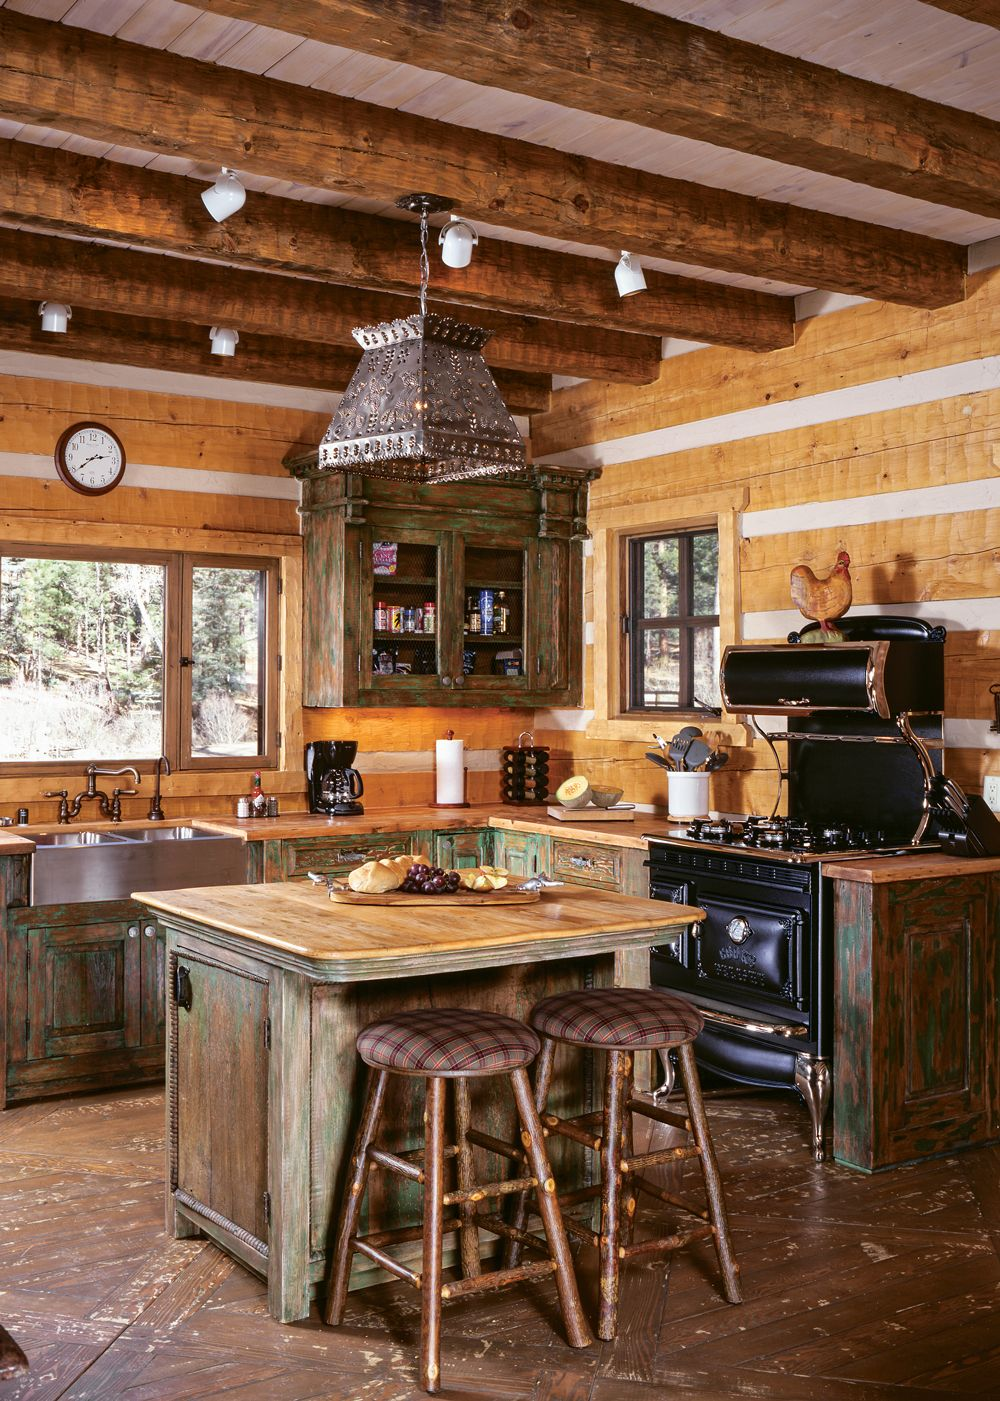 Charming Chic Log And Timber Frame Kitchens Log Home Kitchens Log Cabin Kitchens Cabin Kitchens